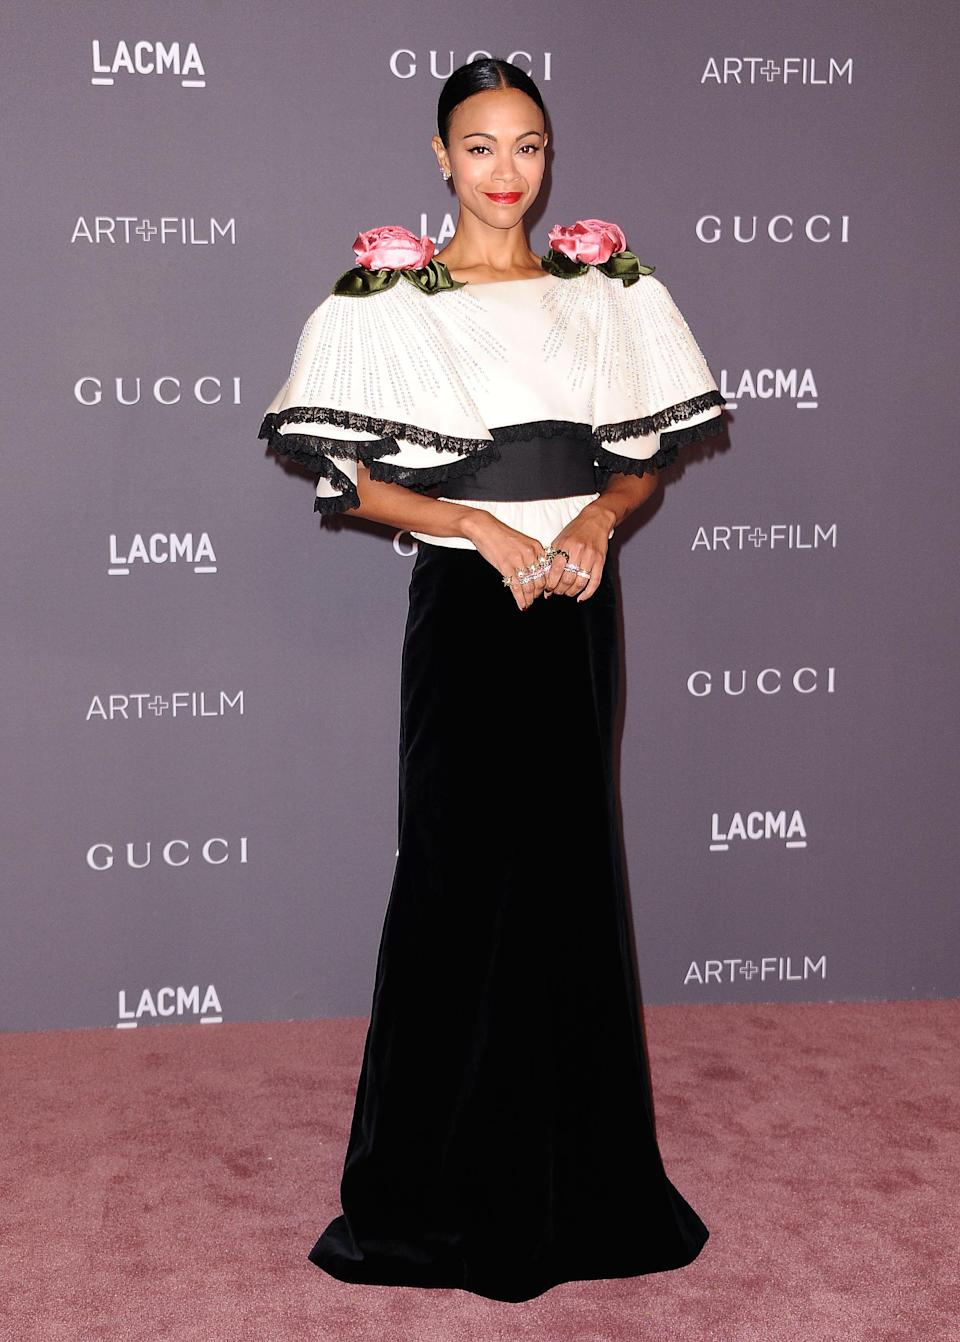 Zoe Saldana attends the 2017 LACMA Art + Film gala on Nov. 4, in Los Angeles. (Photo: Getty Images)